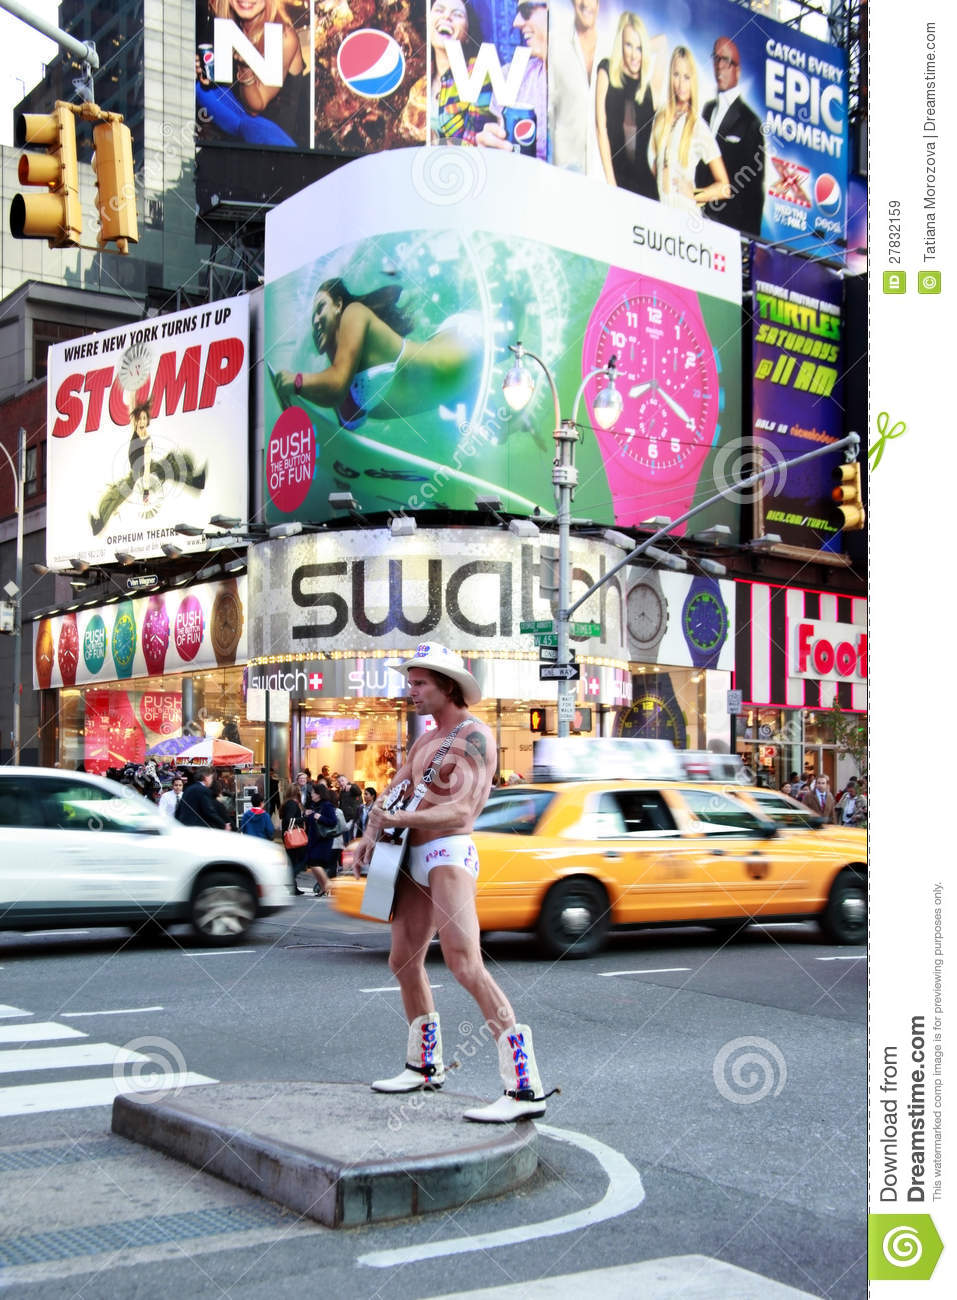 Naked Cowboy Editorial Stock Image - Image 27832159-4350